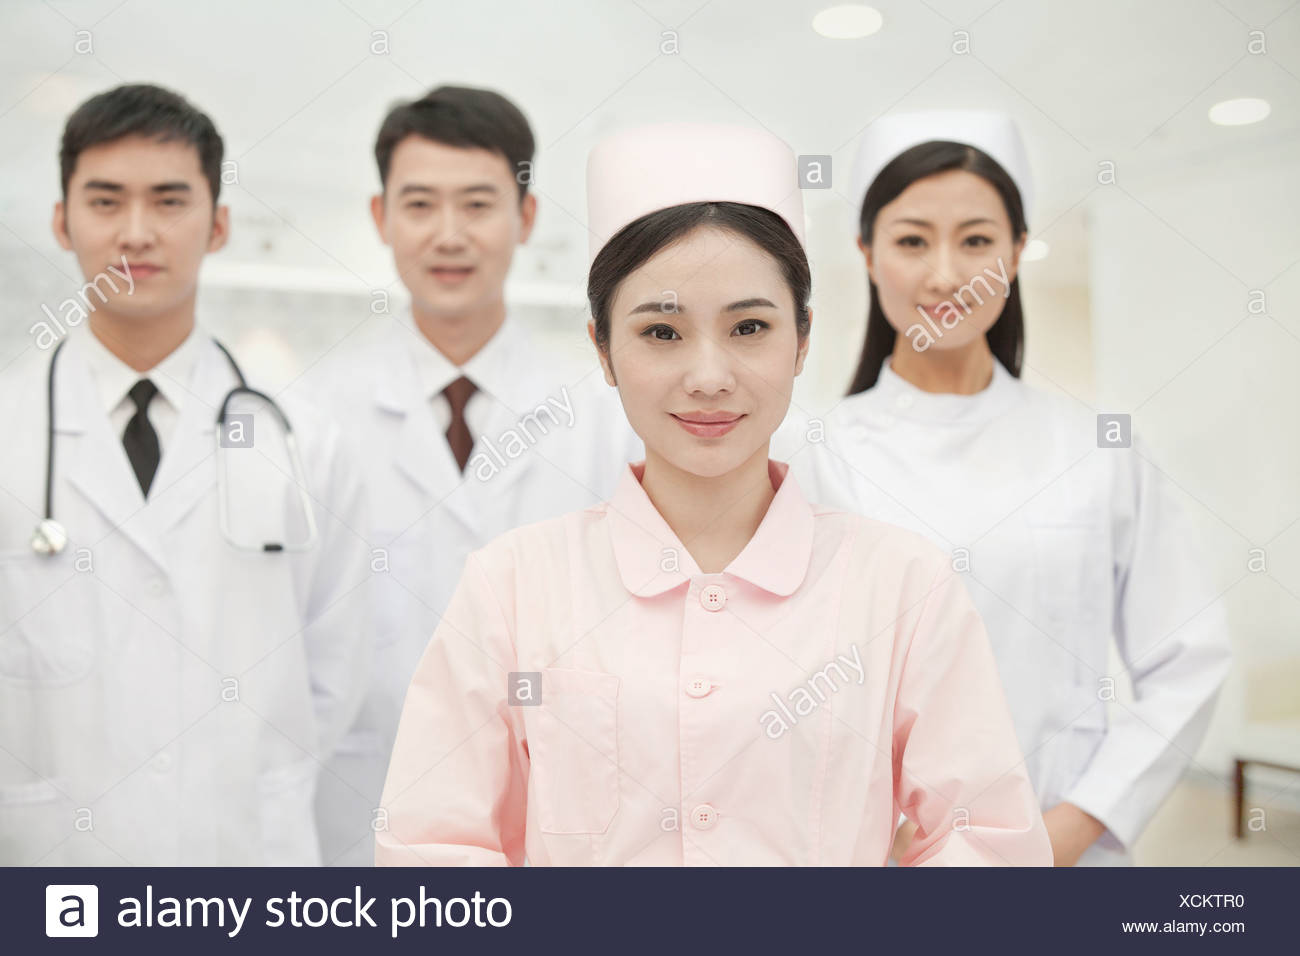 Portrait of Four Healthcare workers, China - Stock Image